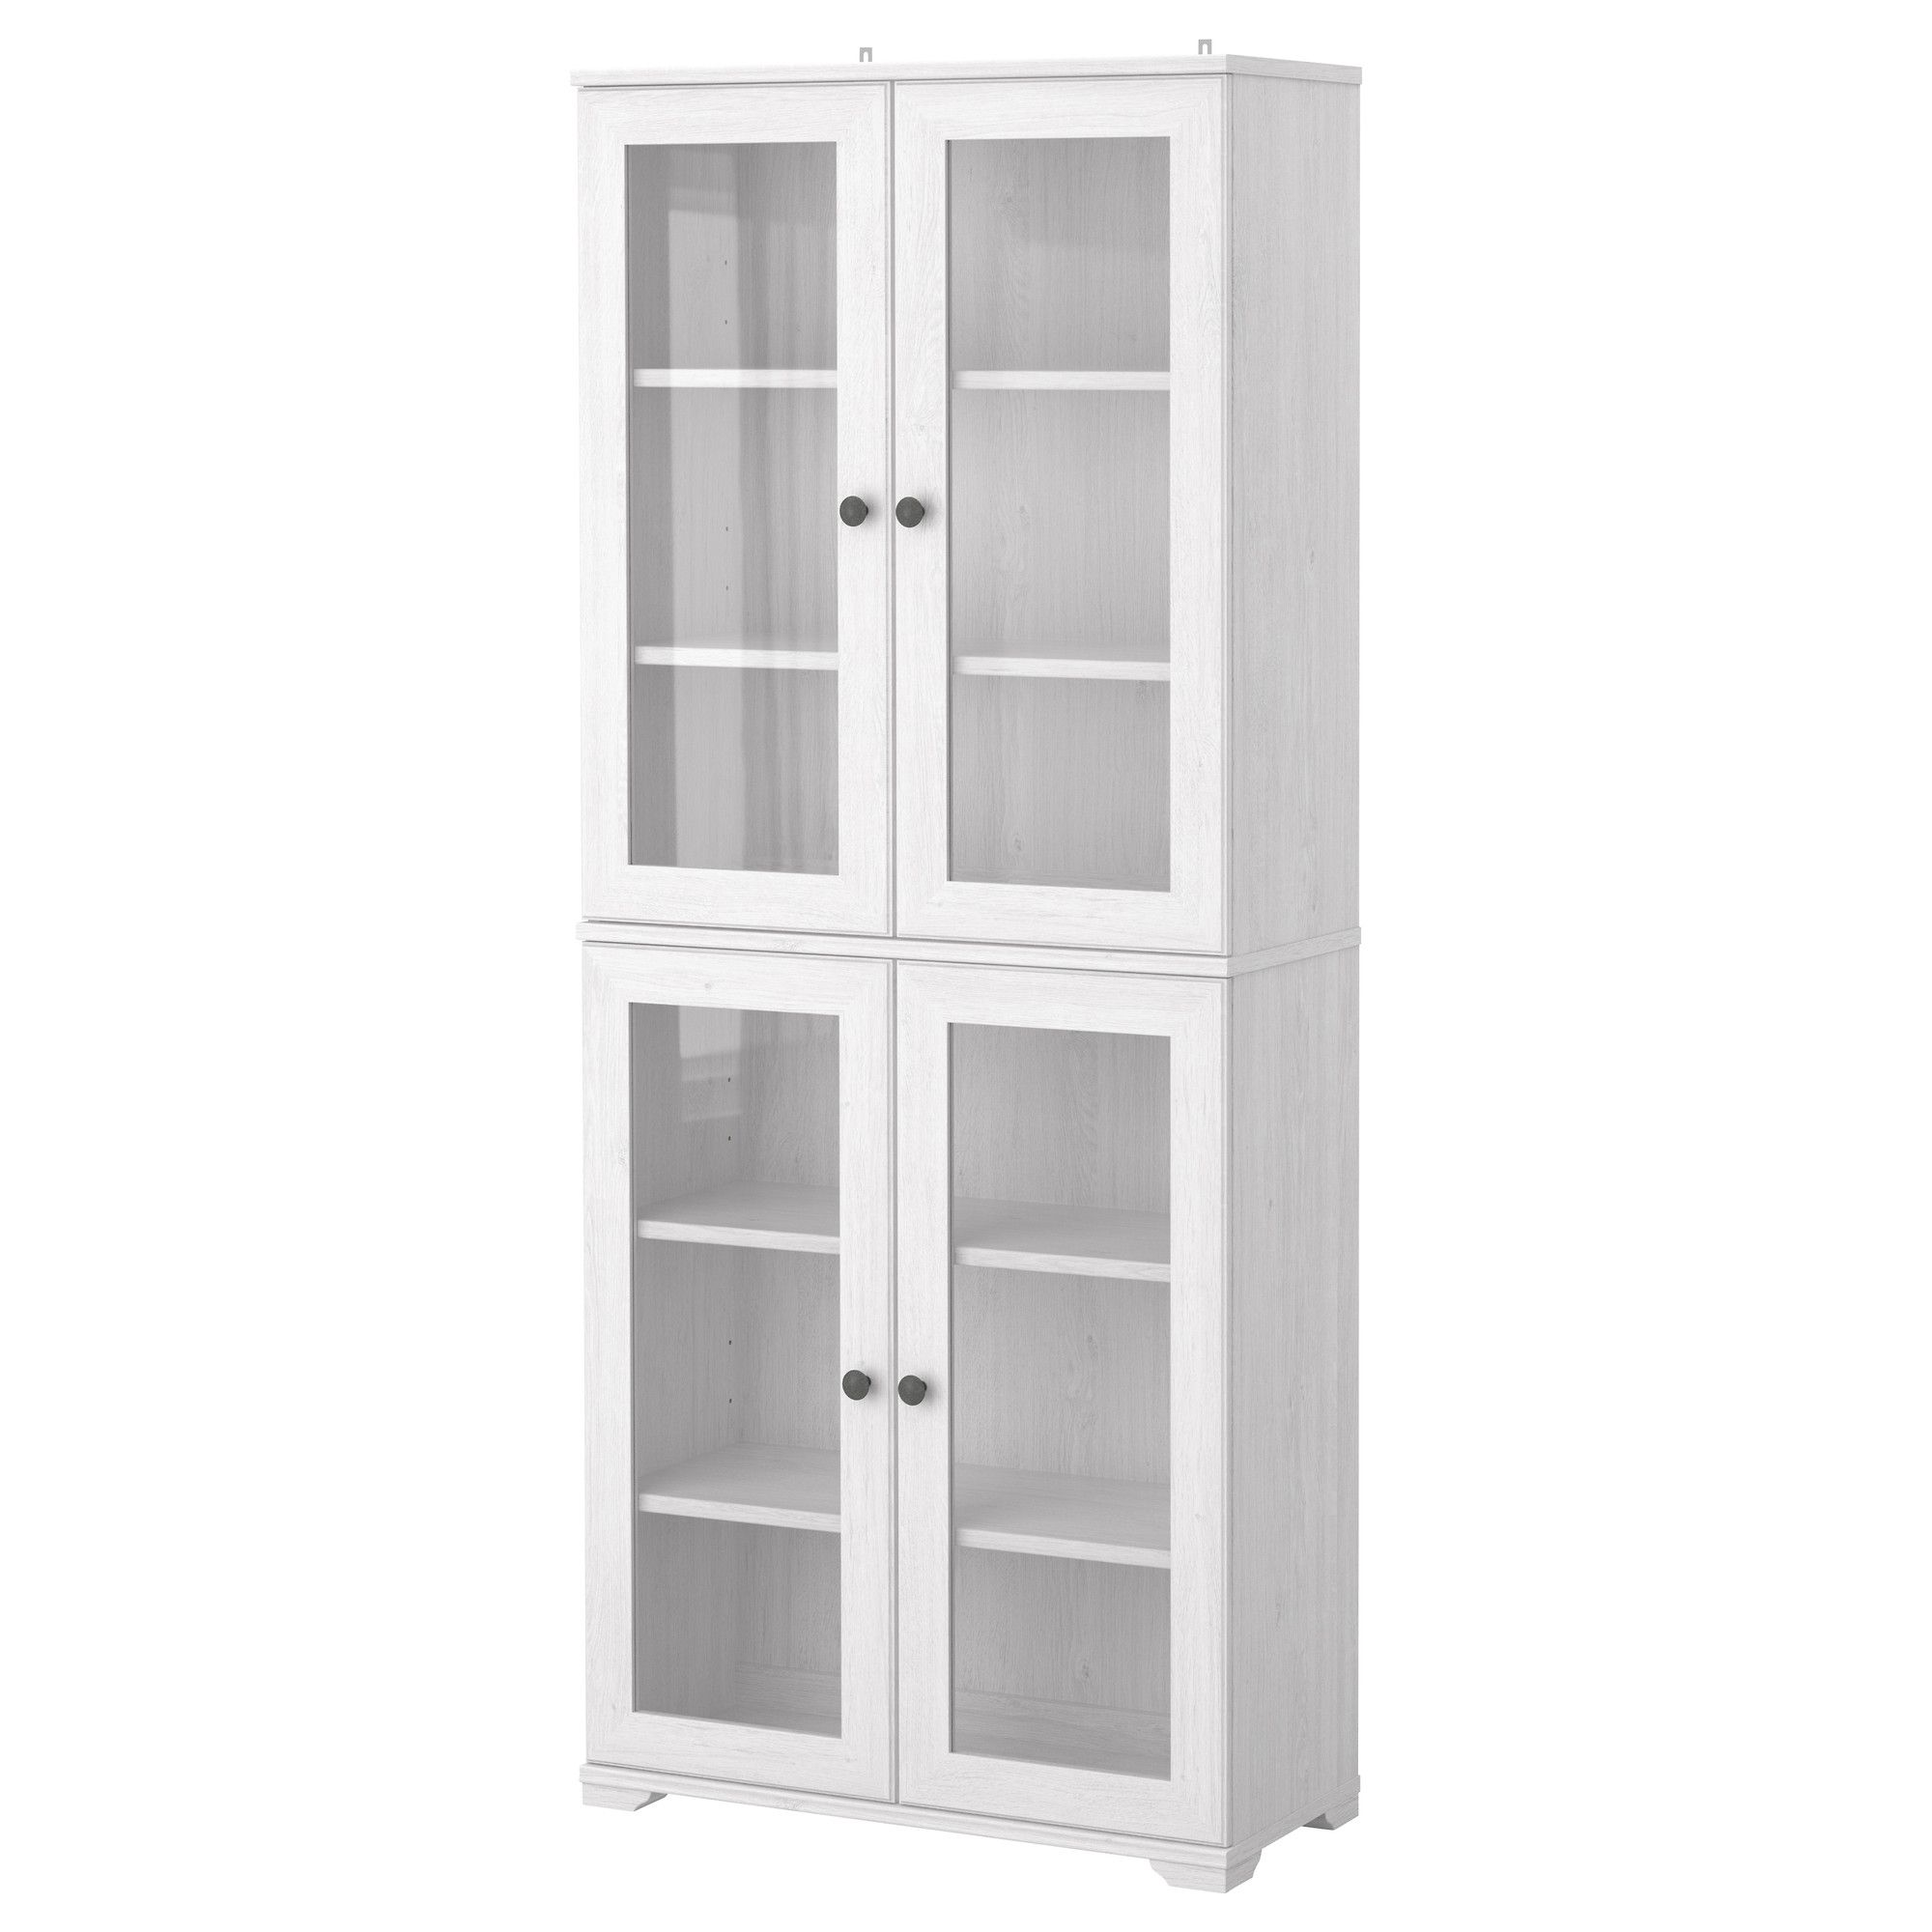 Borgsj glass door cabinet white ikea 135 as pictured - Ikea glass cabinets ...